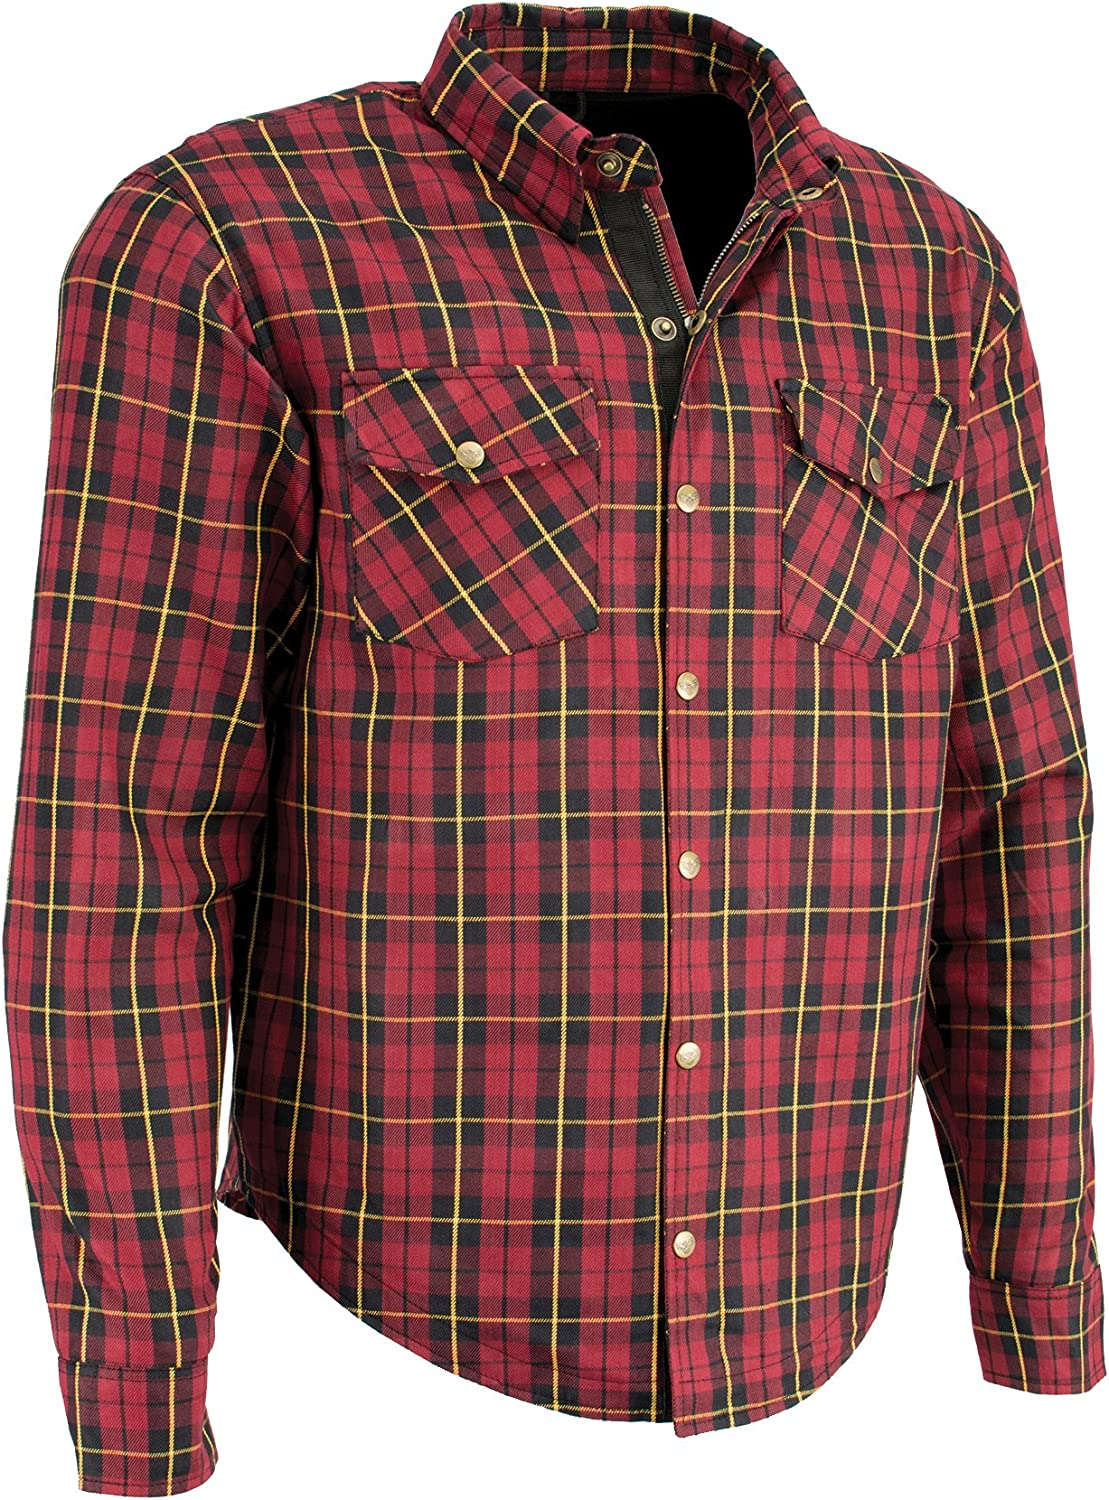 Black//Red//Yellow, L Milwaukee Performance Mens Checkered Flannel Biker Shirt With Aramid